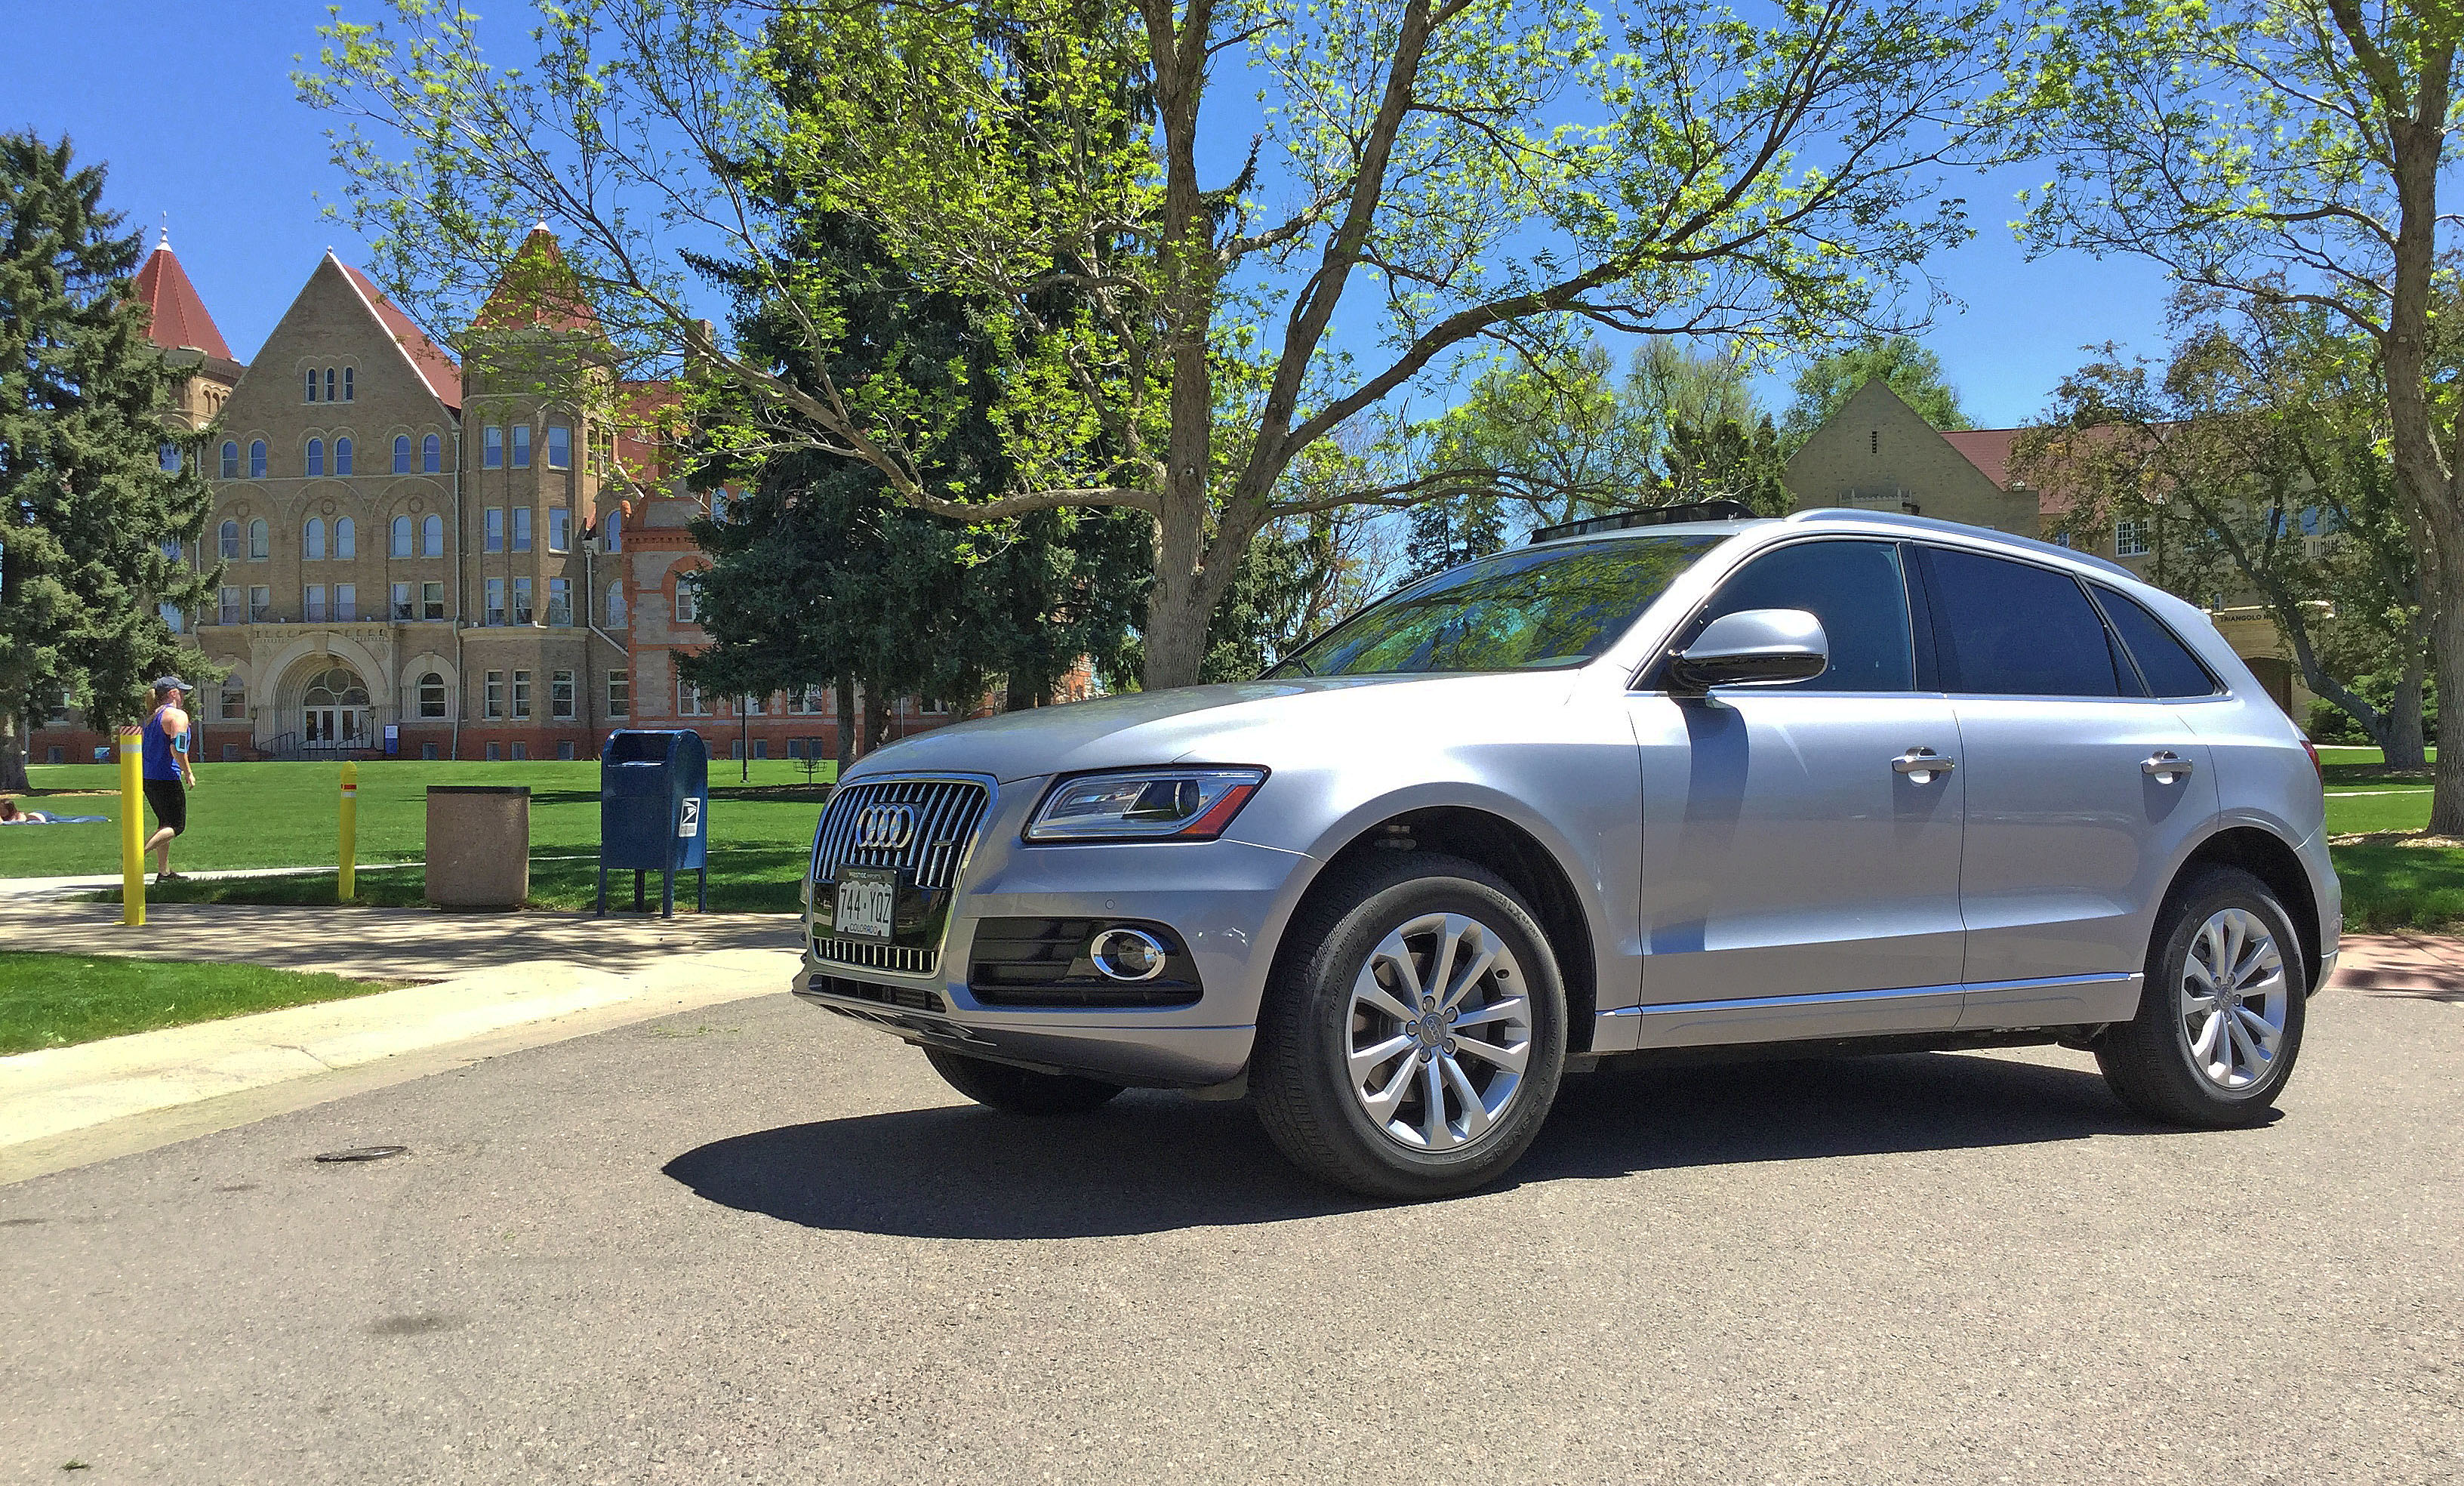 Denver's South Park Hill Neighborhood and the Audi Q5